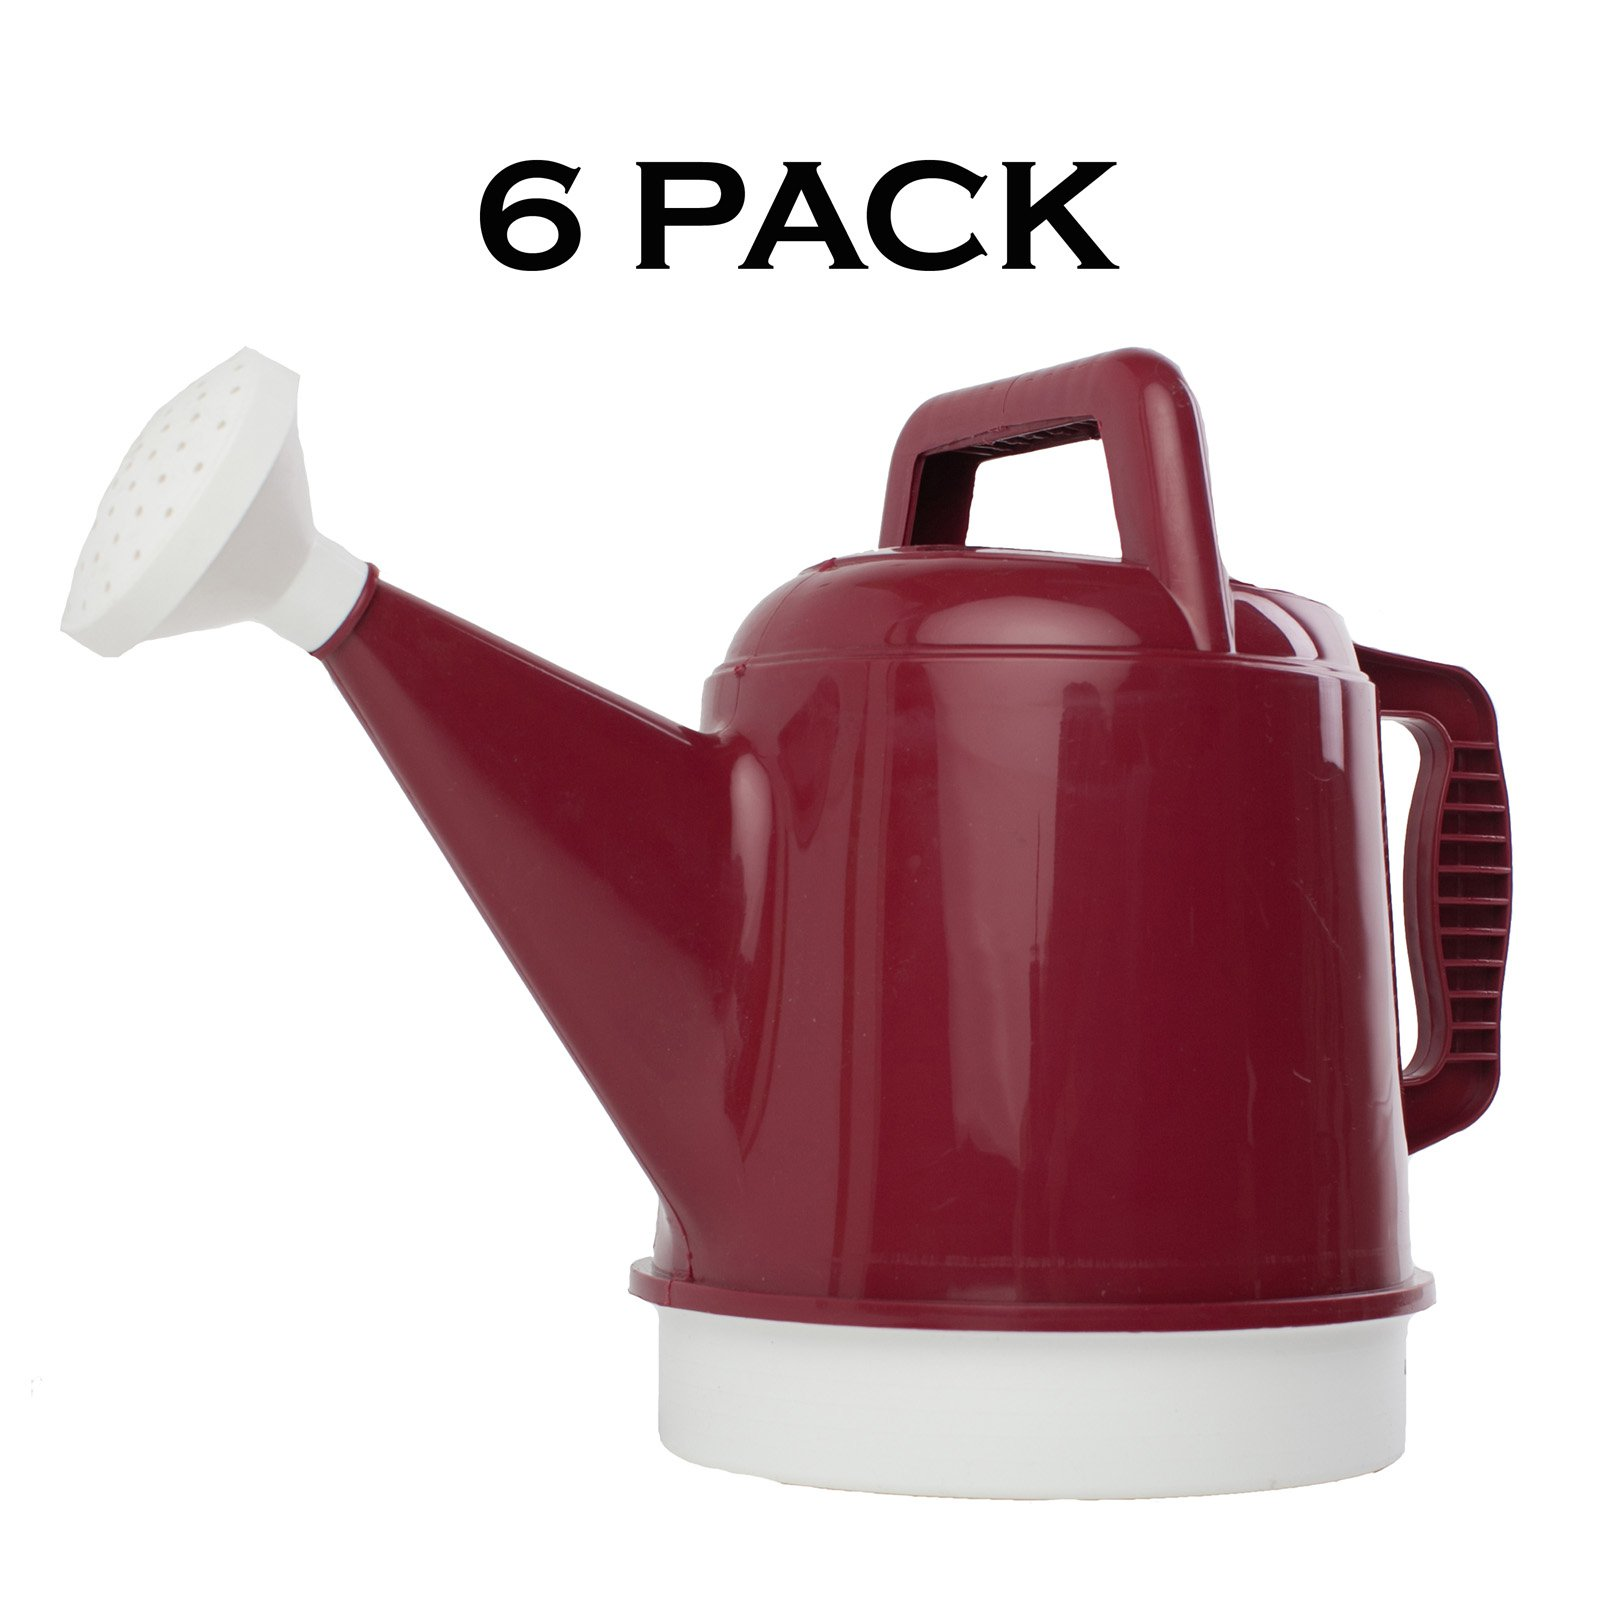 Bloem 2.5 gal. Deluxe Watering Can Set of 6 by Overstock